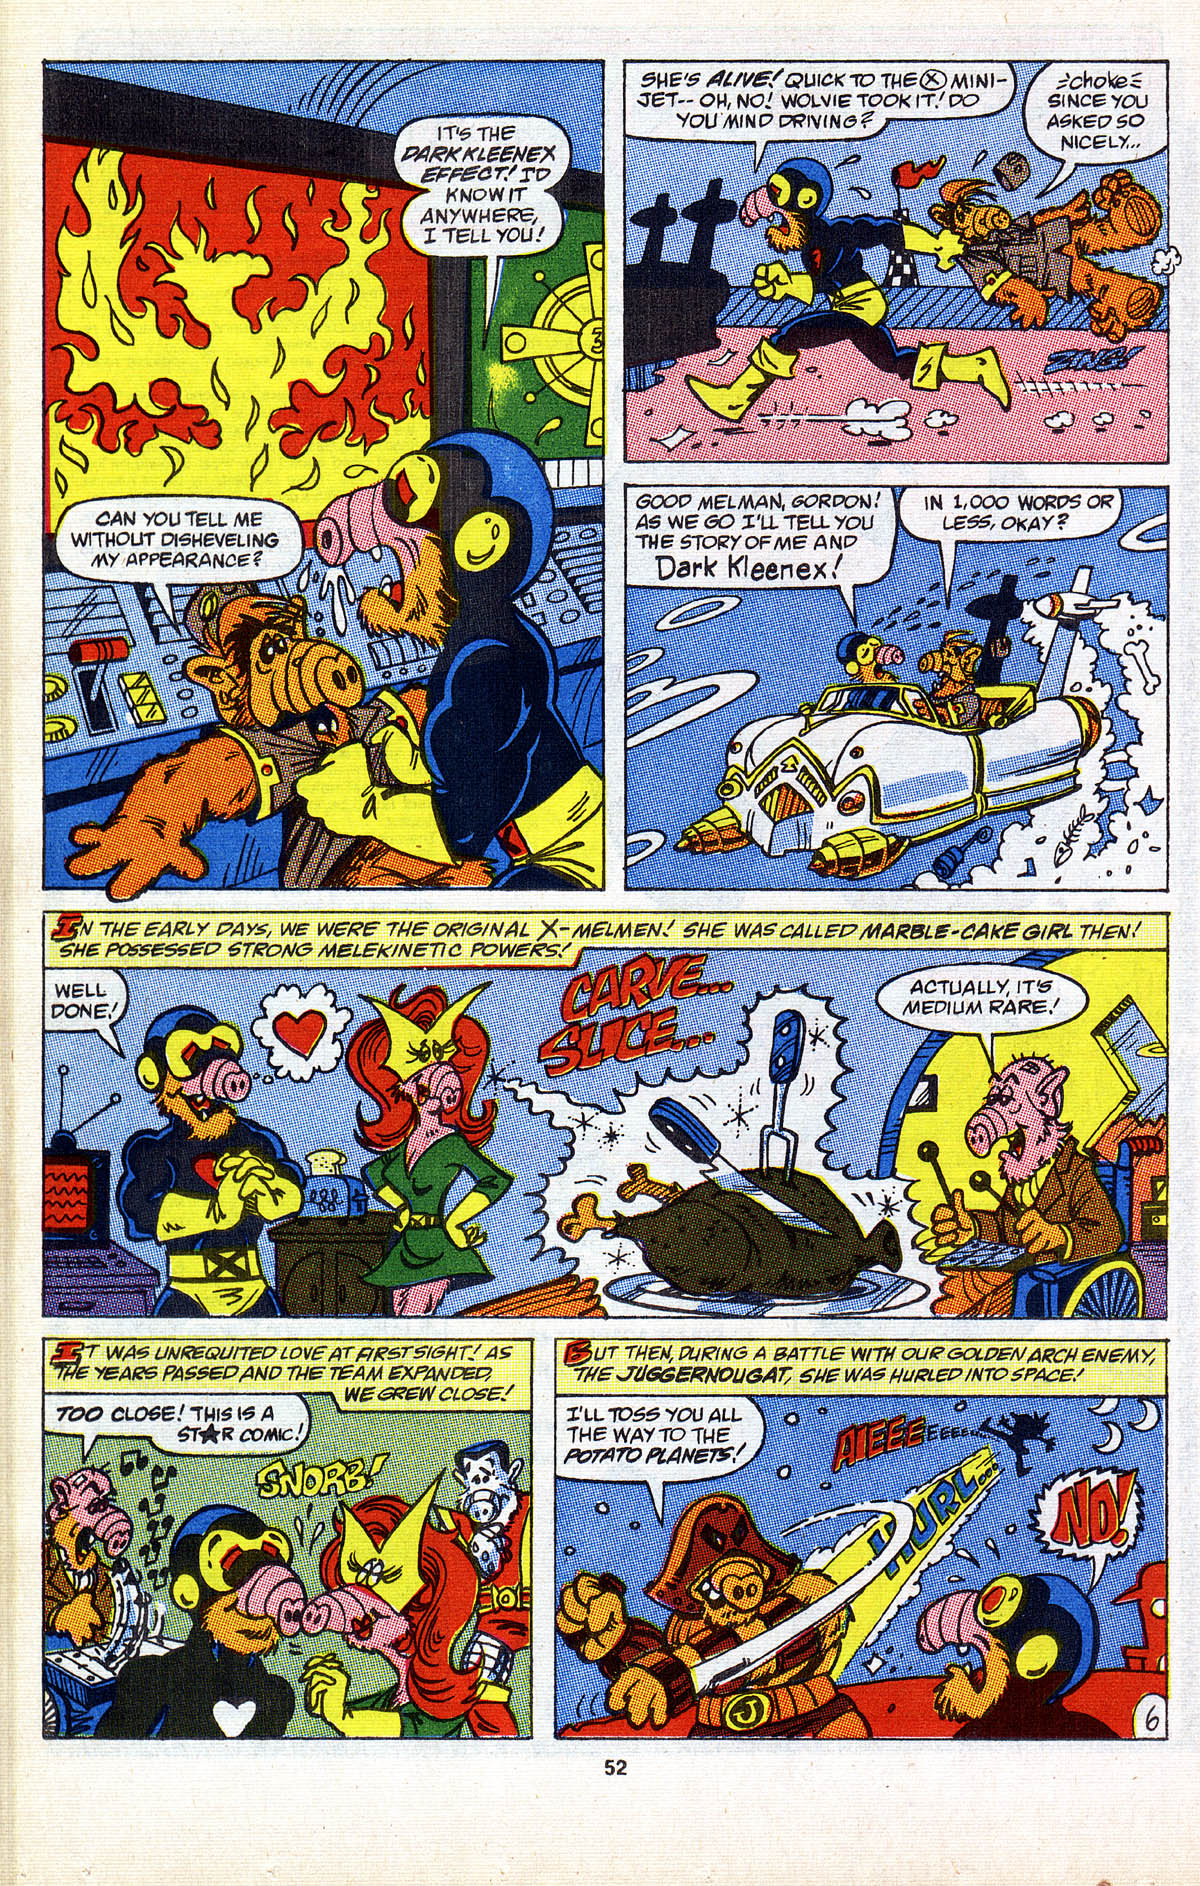 Read online ALF comic -  Issue #2 - 53